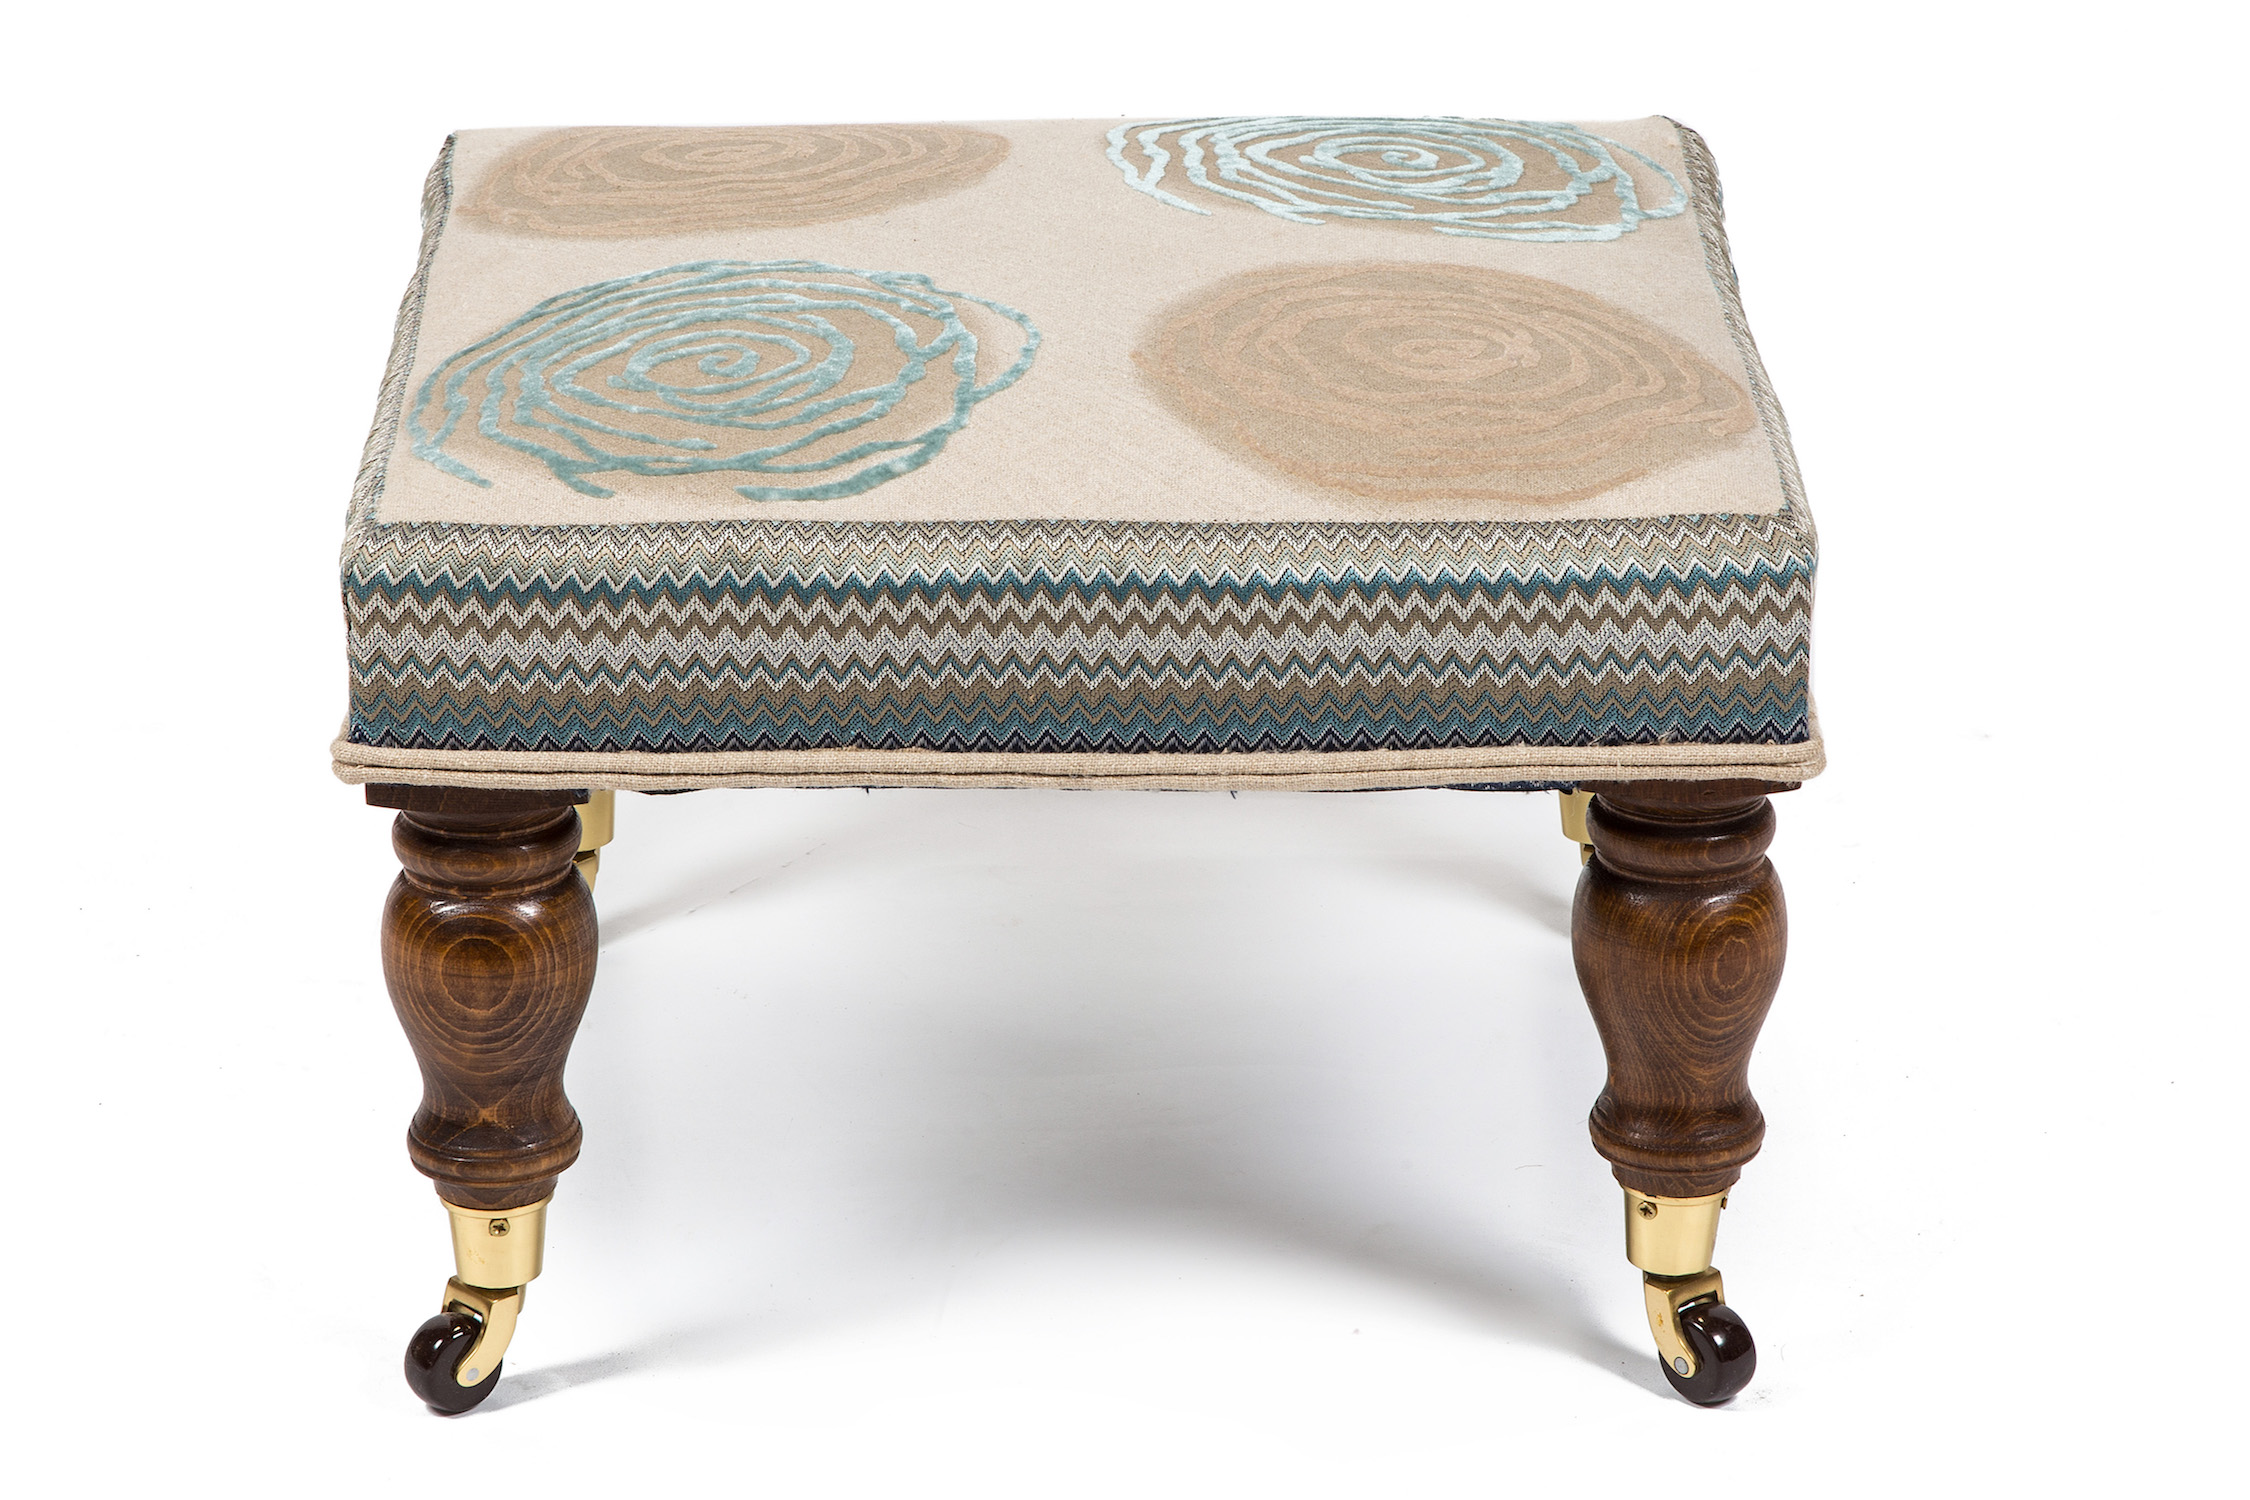 Square Bordered Footstool with Turned Legs and Castors